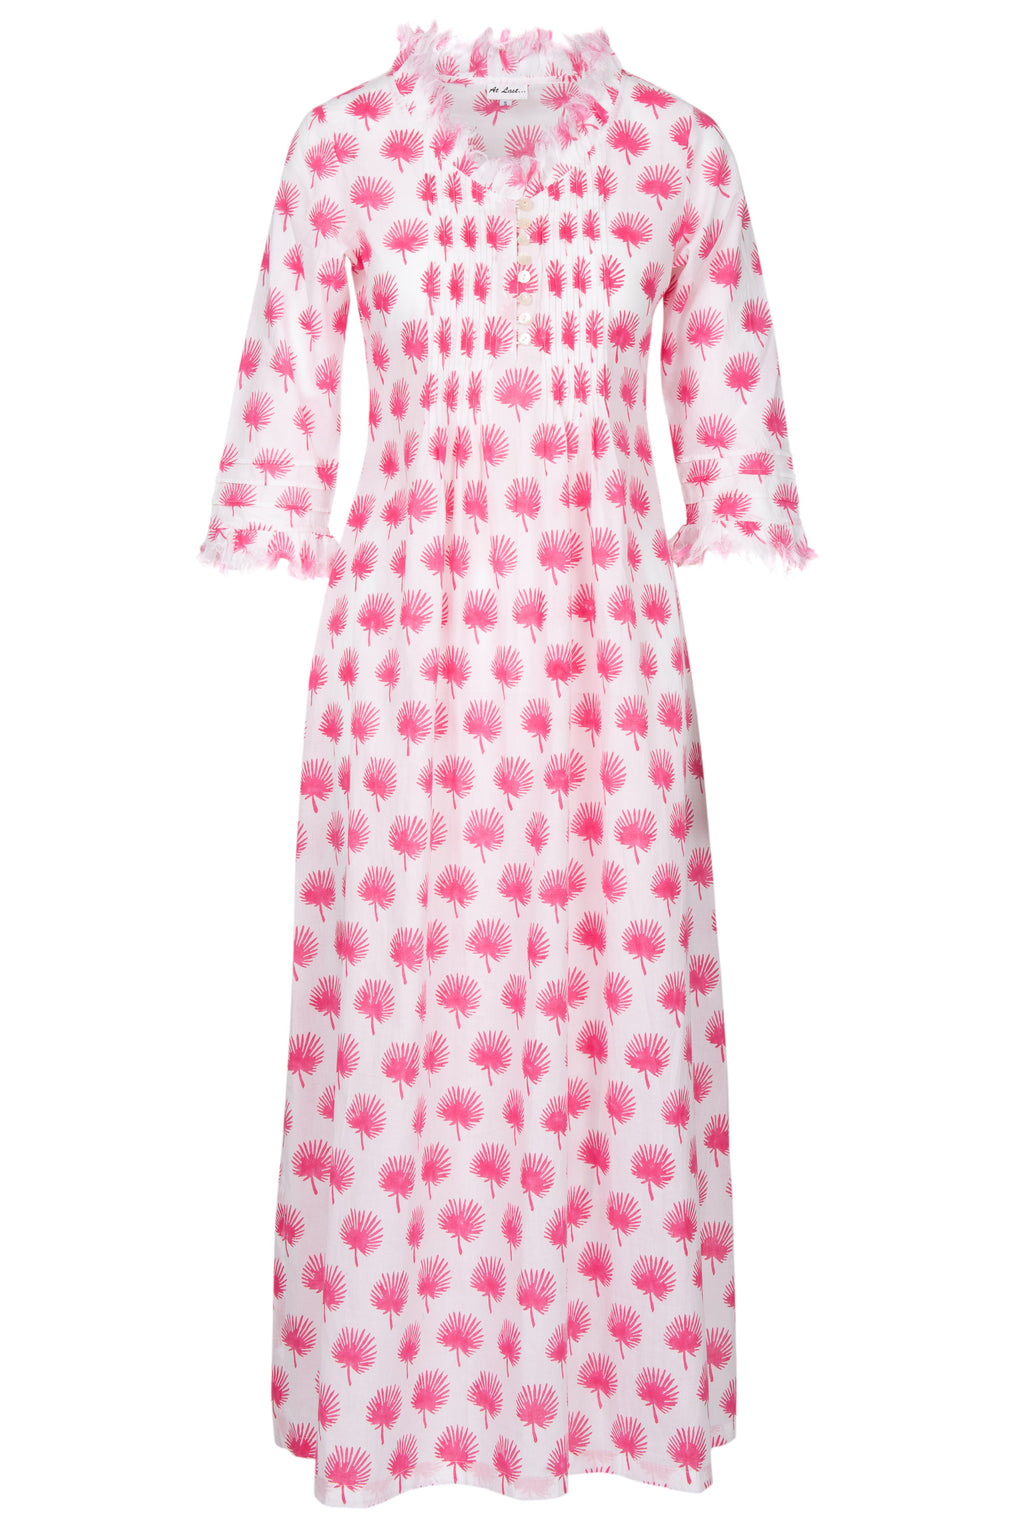 Annabel Maxi Dress - Pink Palm